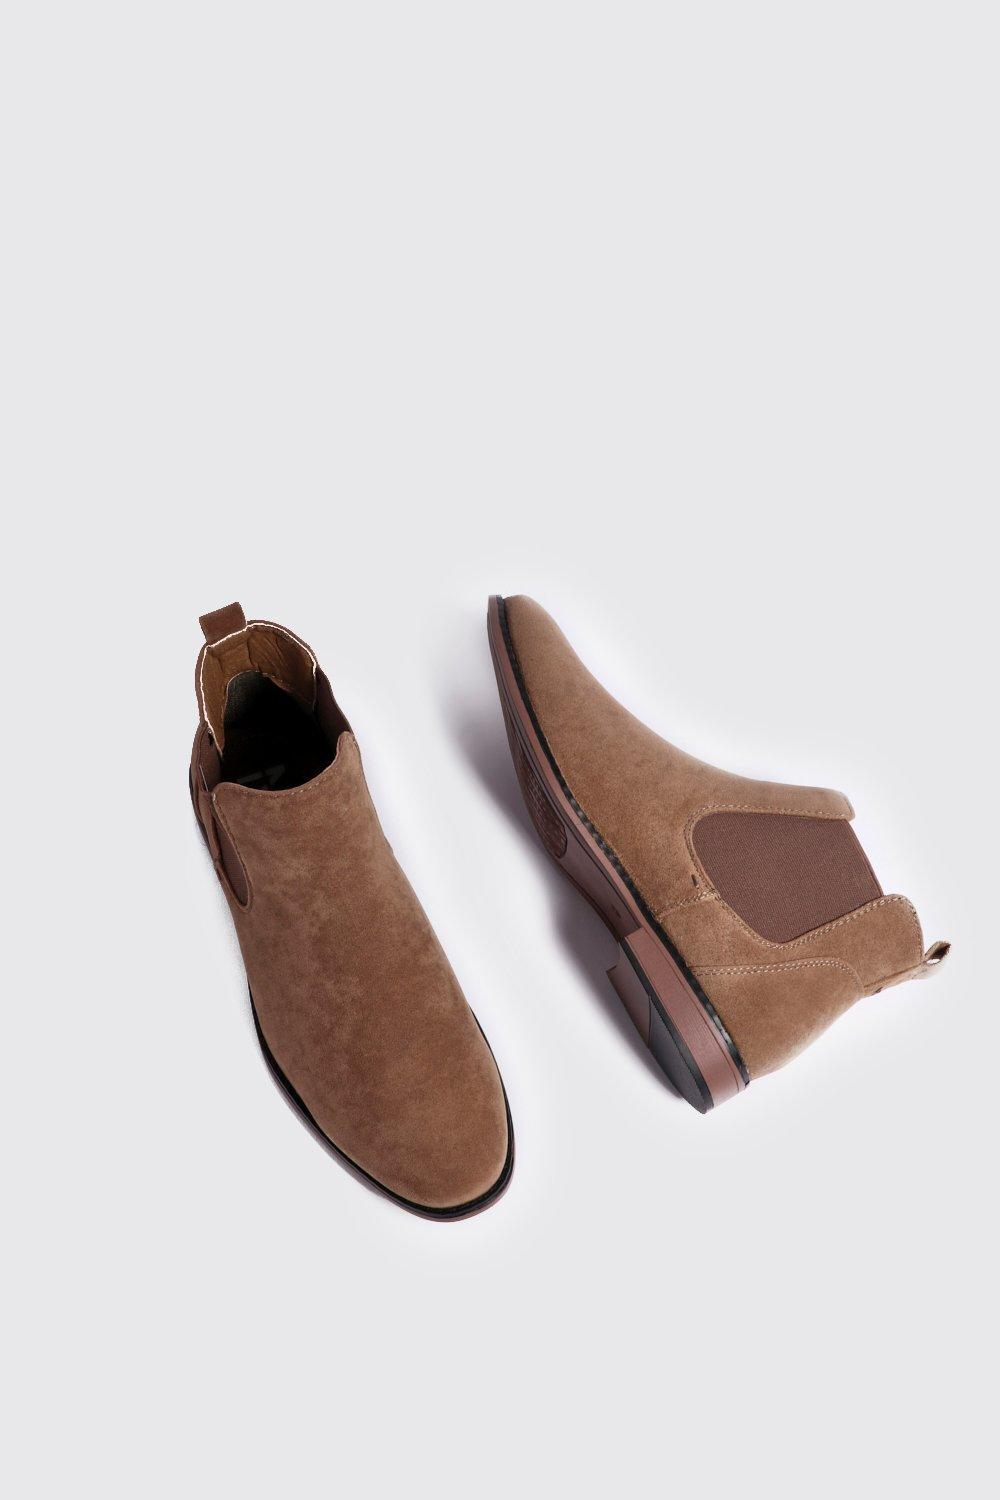 boohoo mens faux suede chelsea boots ebay